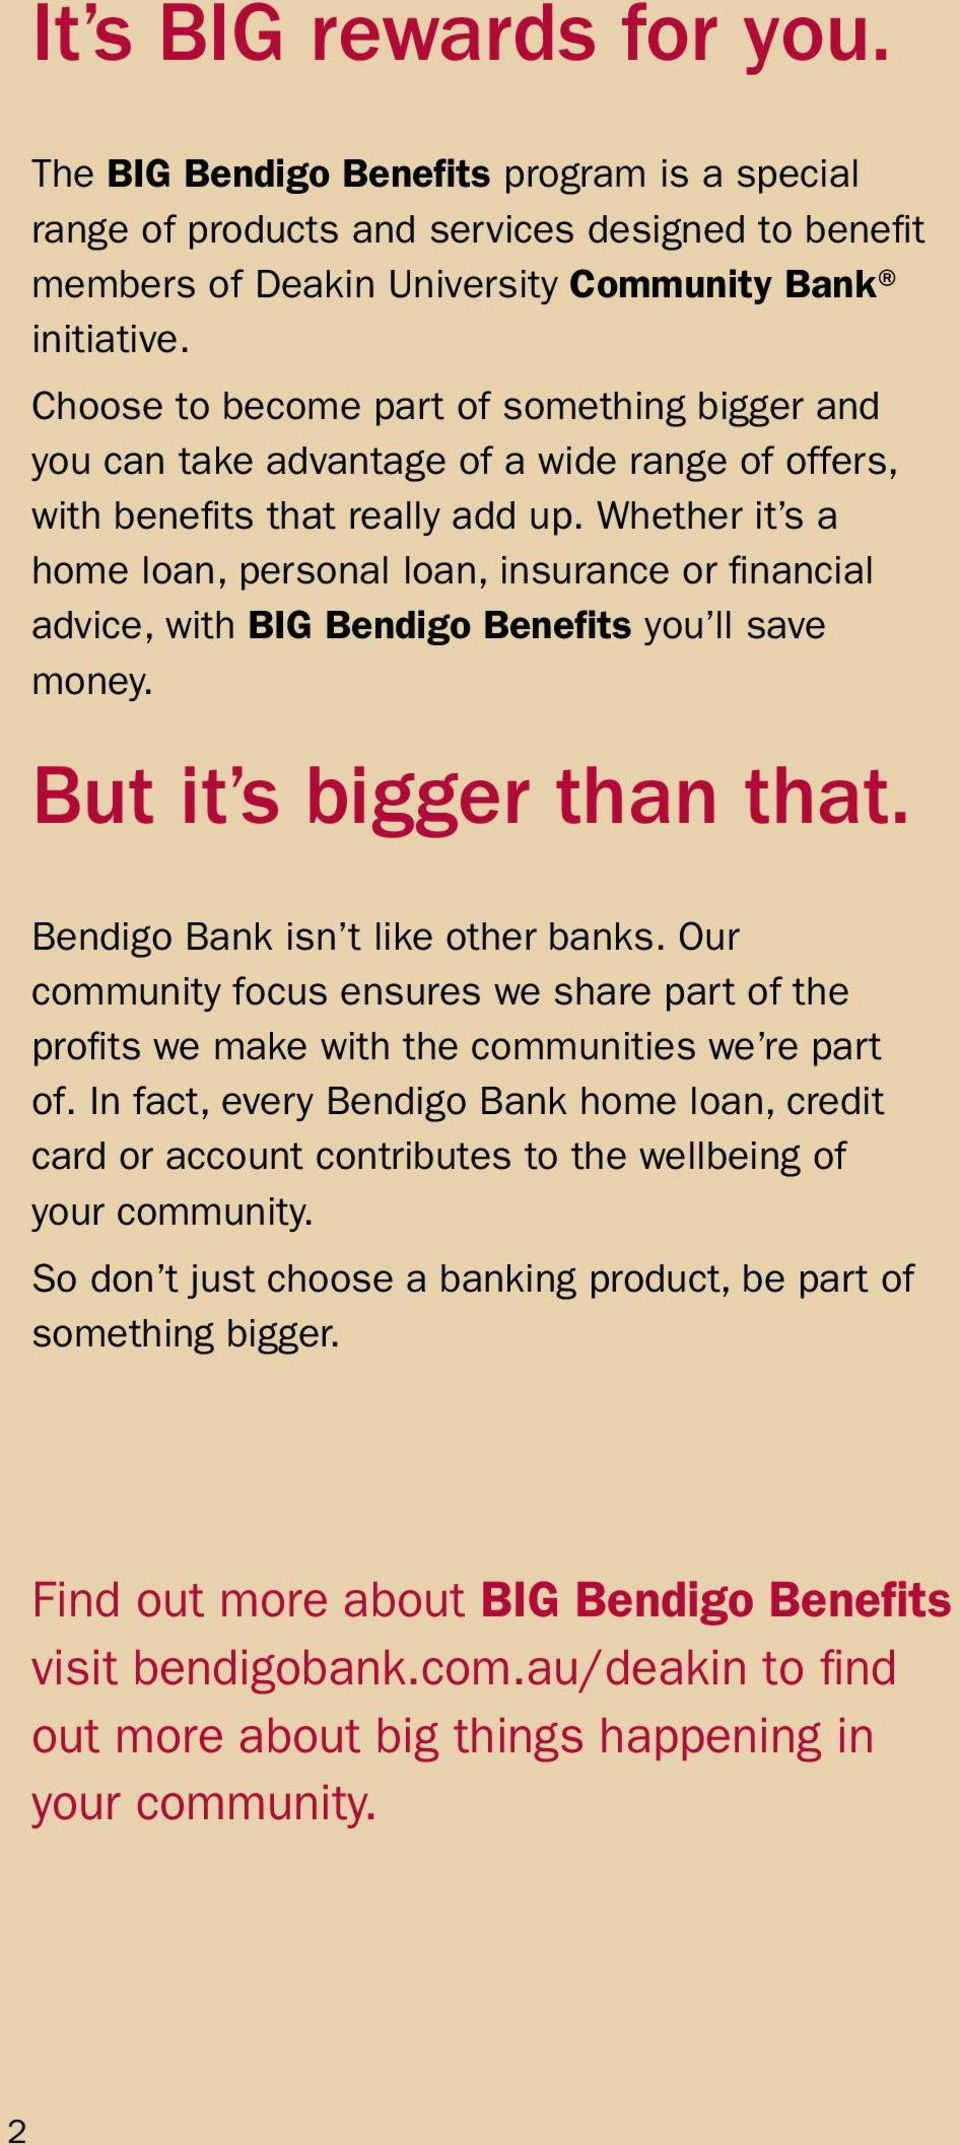 Whether it s a home loan, personal loan, insurance or financial advice, with BIG Bendigo Benefits you ll save money. But it s bigger than that. Bendigo Bank isn t like other banks.